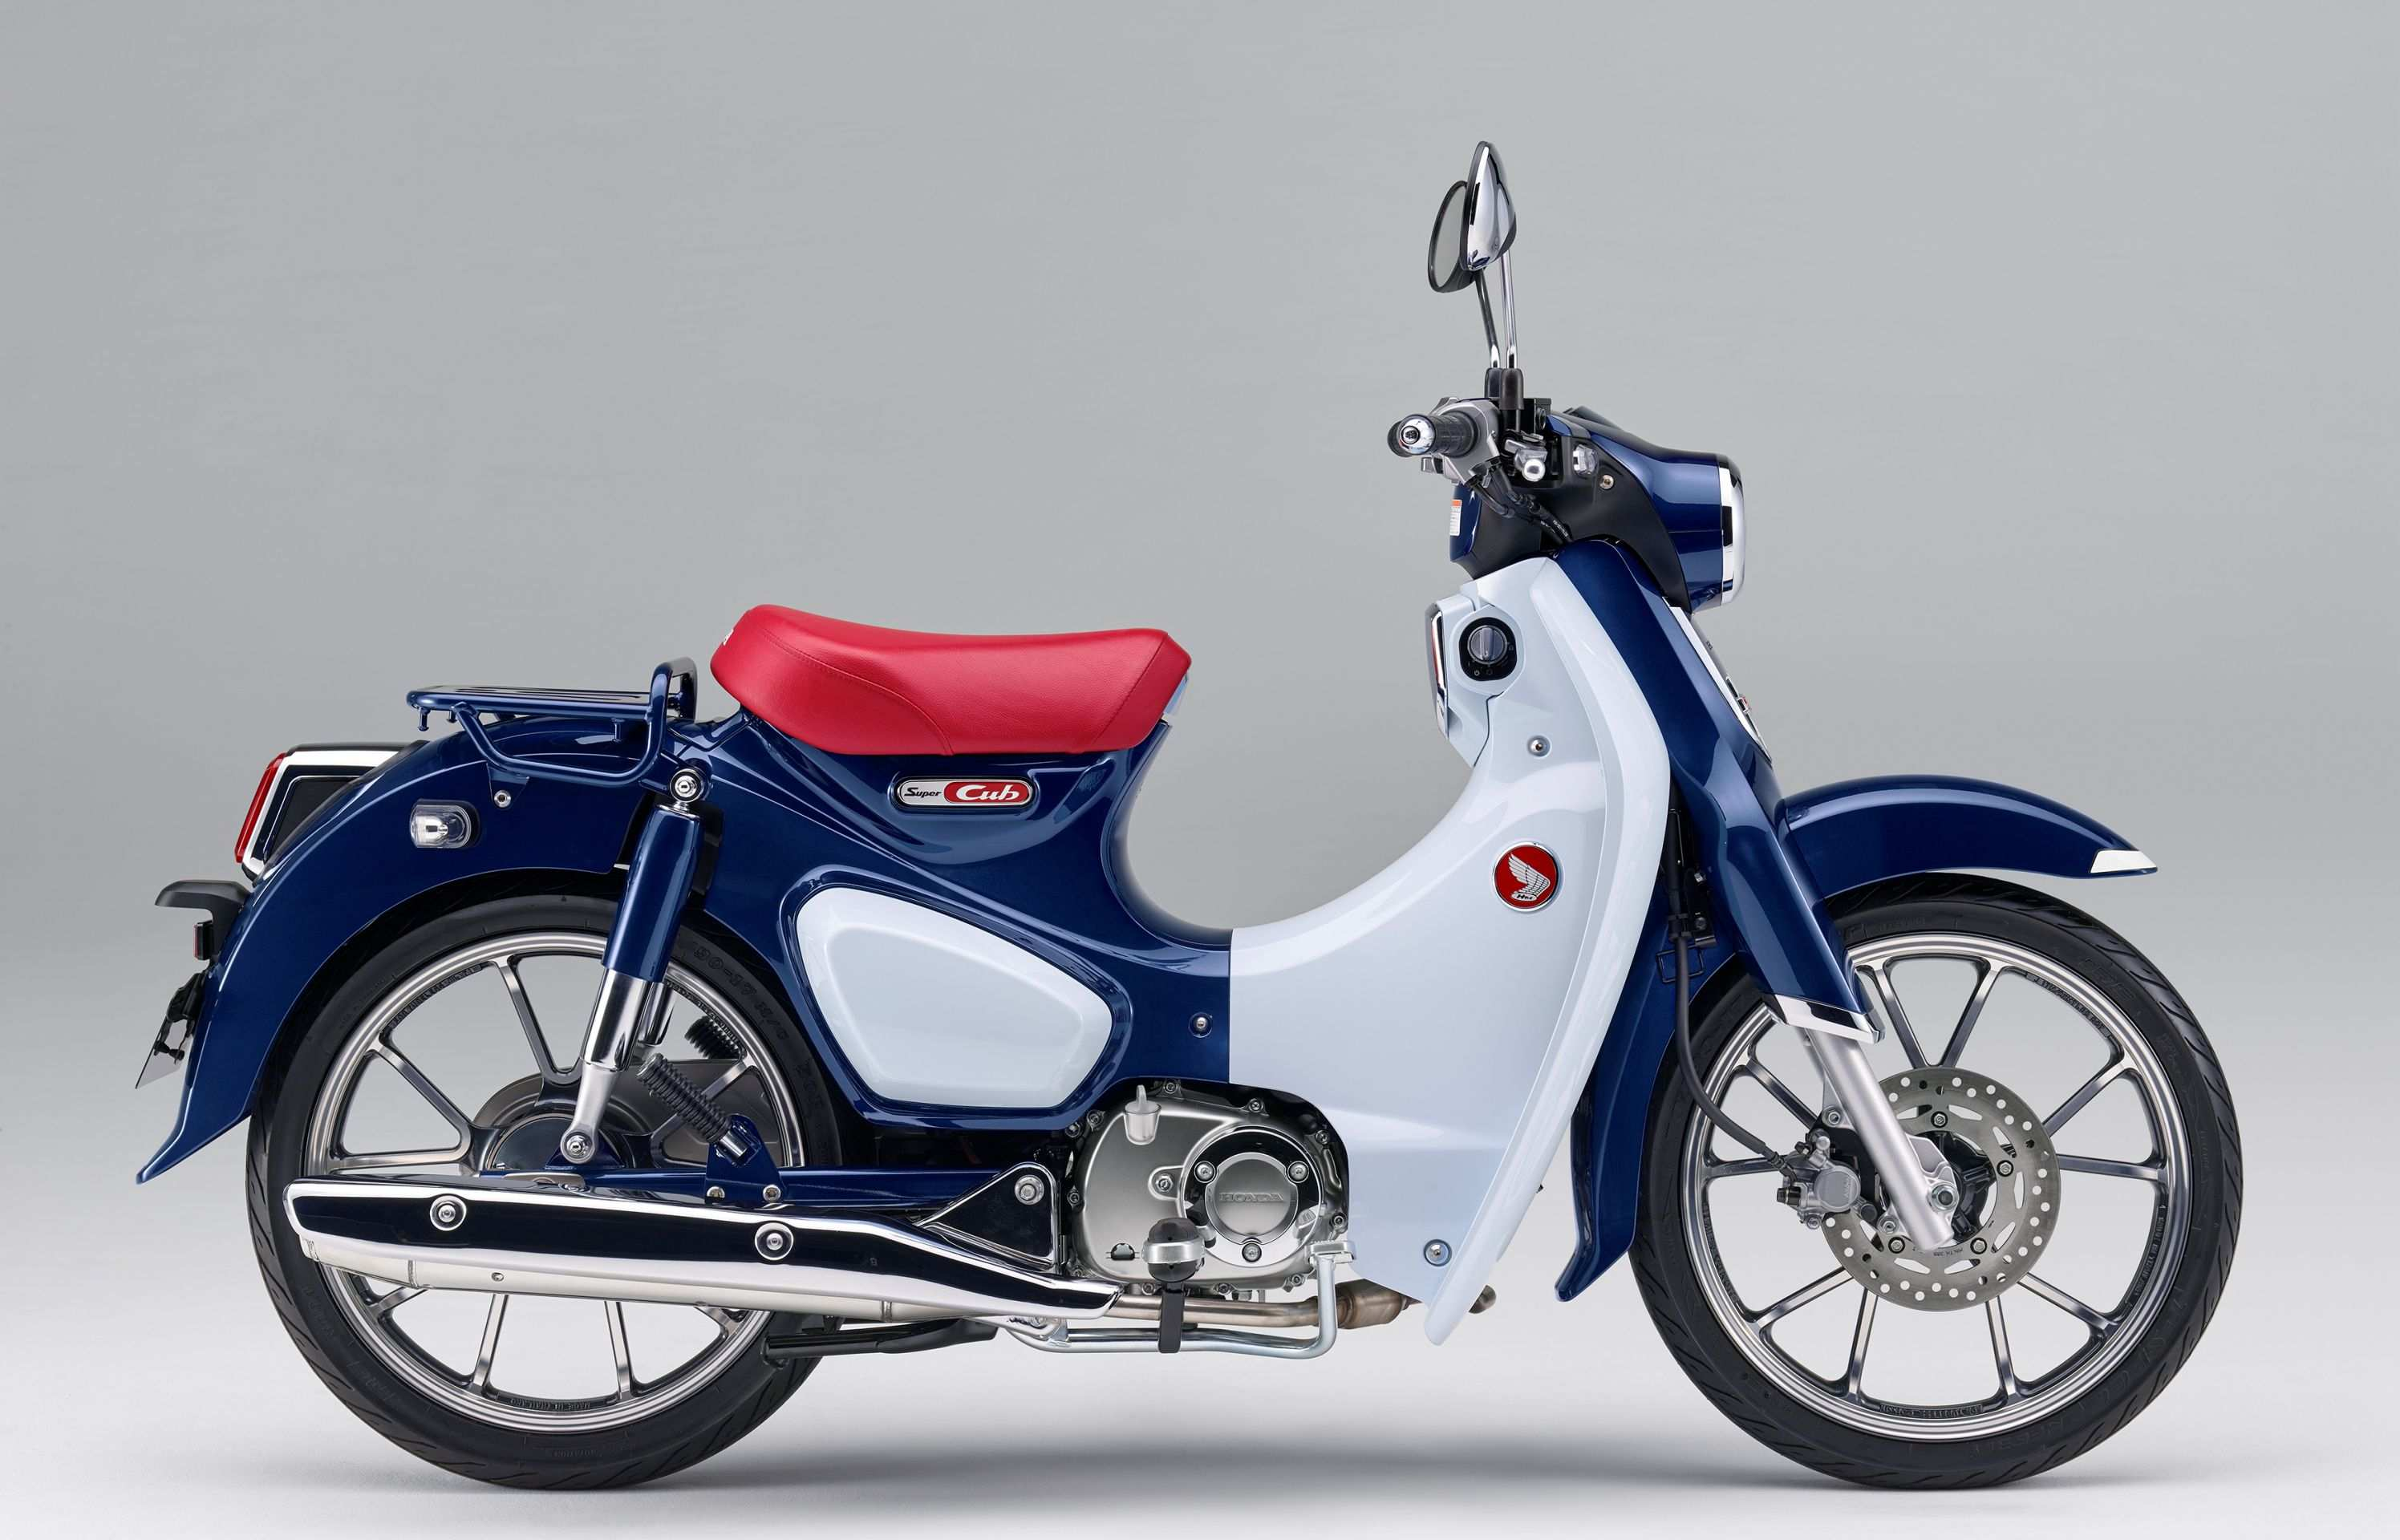 97 New 2019 Honda Super Cub Top Speed Rumors by 2019 Honda Super Cub Top Speed